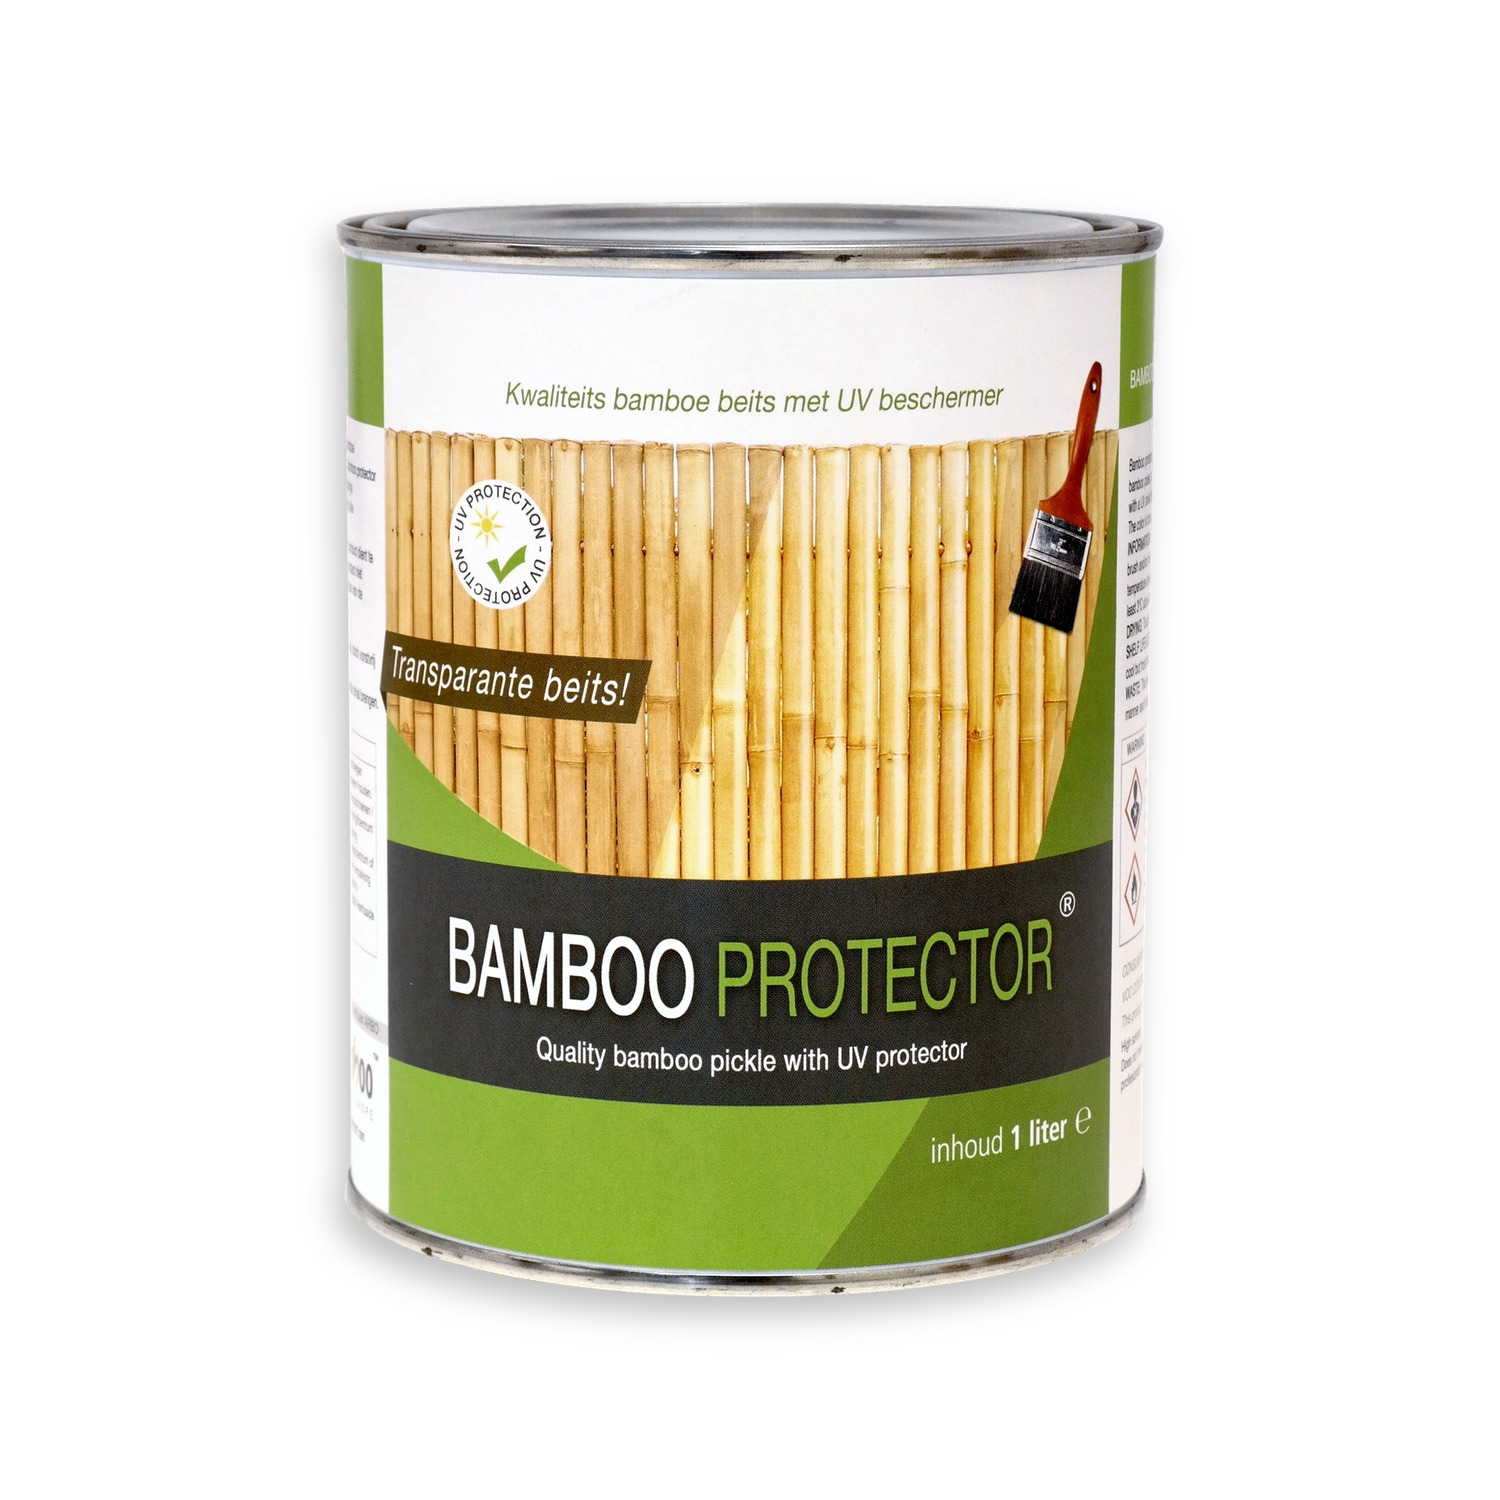 bamboo protector beits